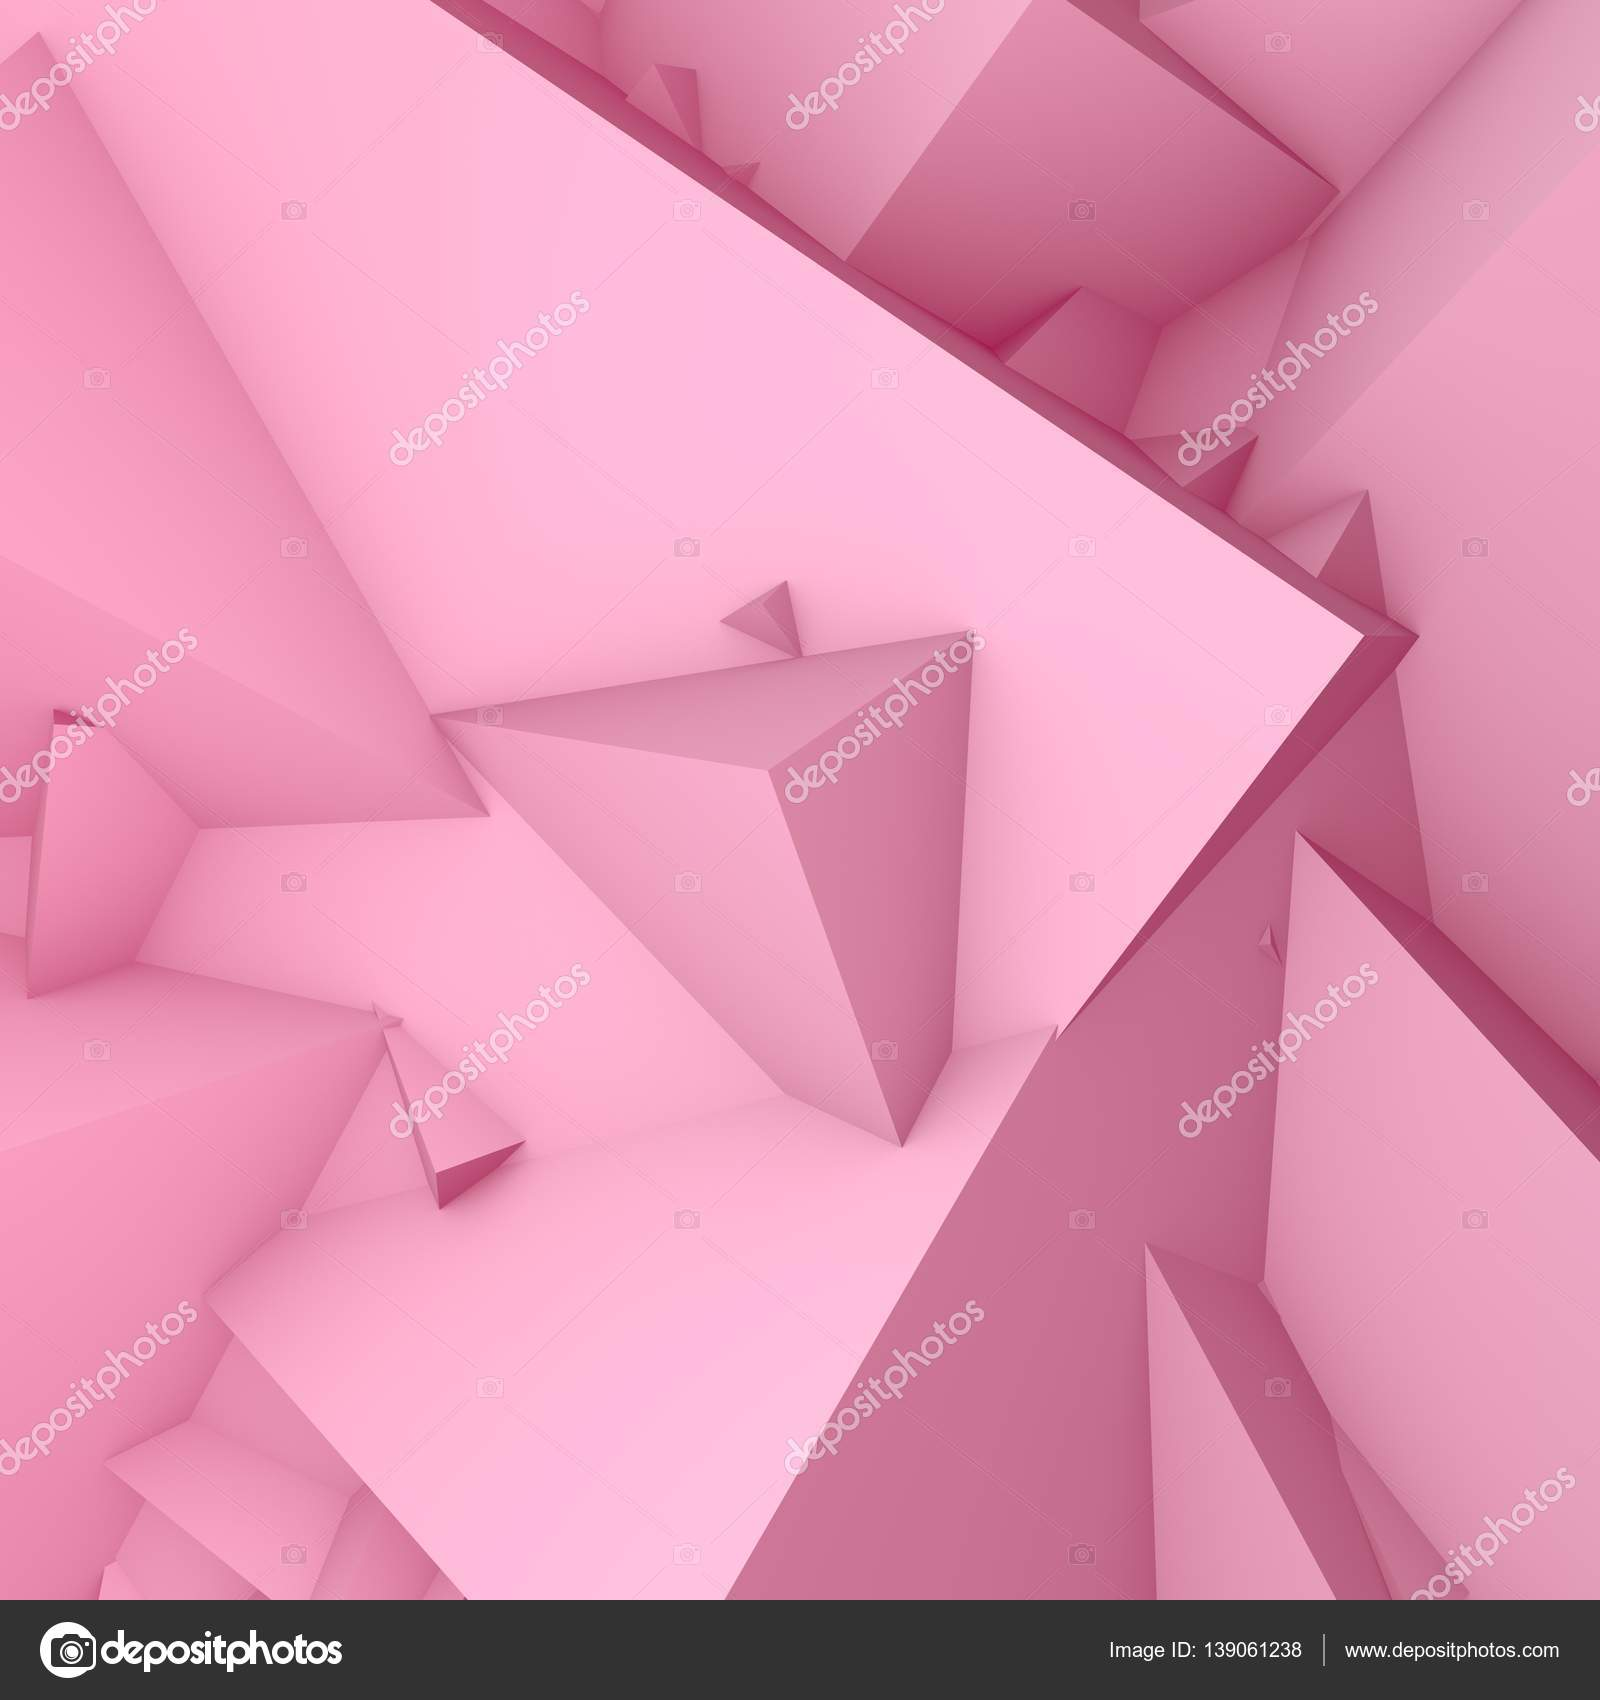 abstract background consisting of geometric shapes 3d pastel pink